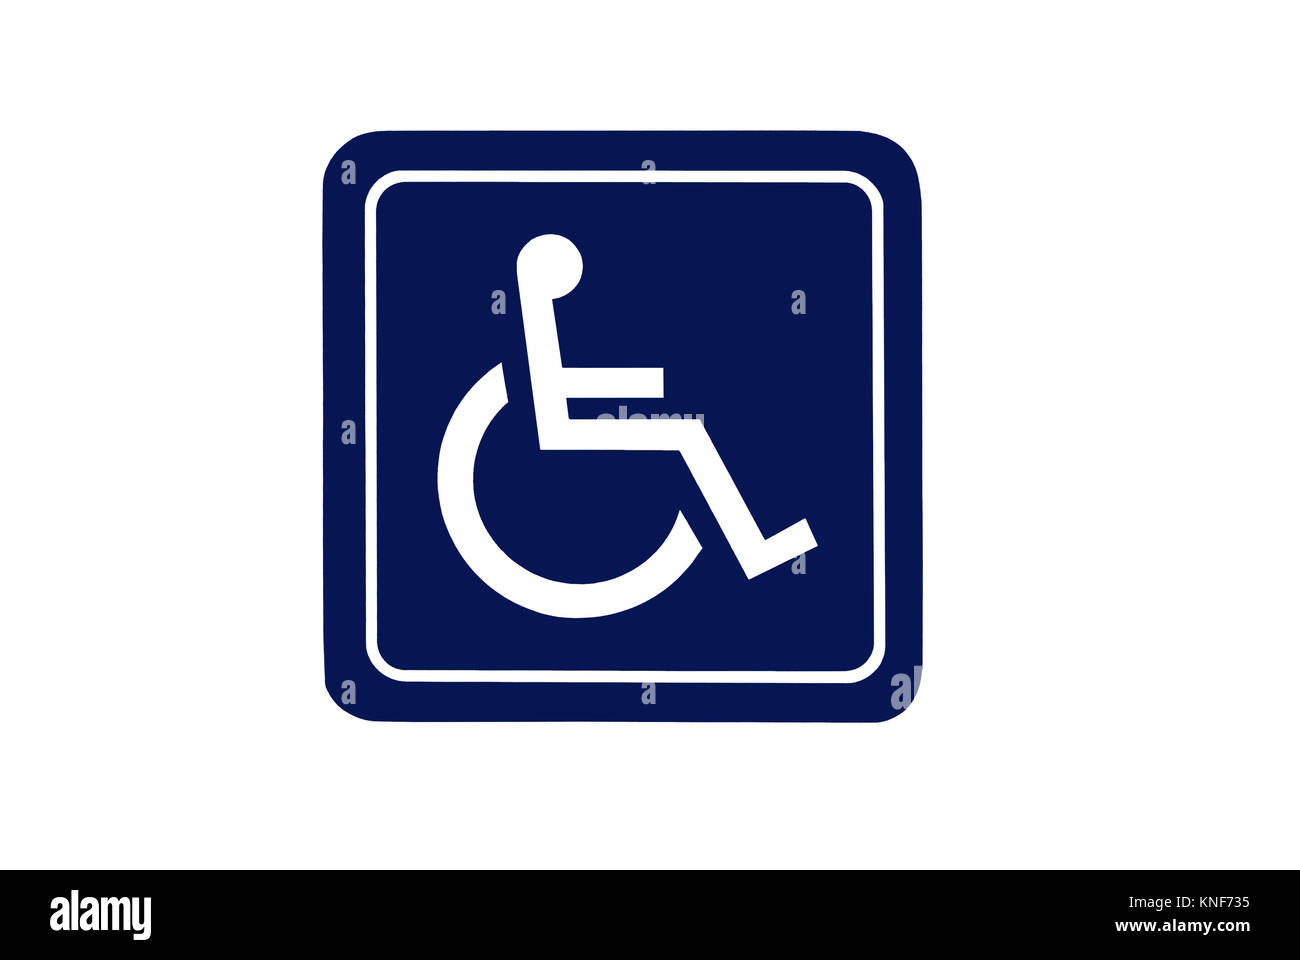 Dark blue handicap sign isolated on white background. For concepts such as health and medical, and handicap and - Stock Image